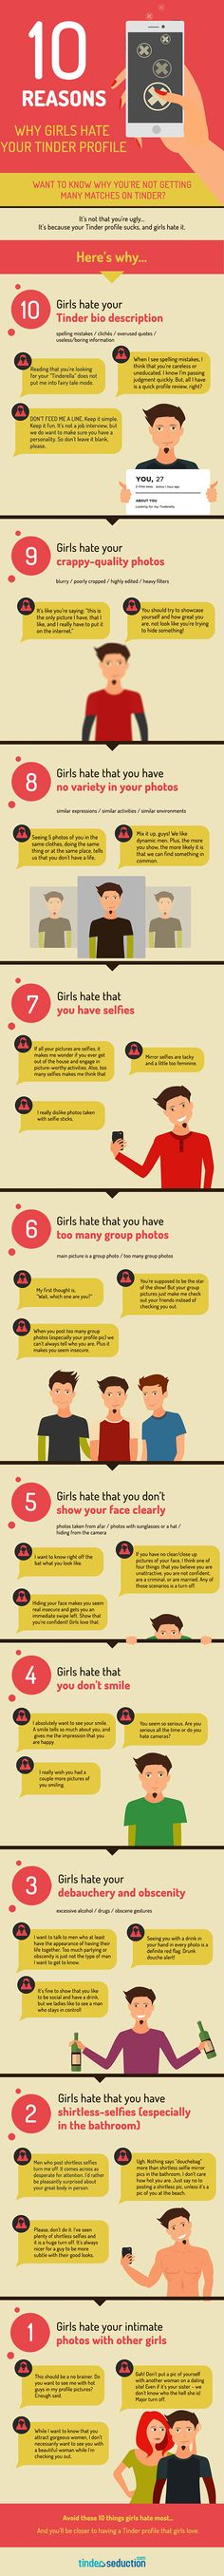 10 Reasons Girls Hate Your Tinder Profile